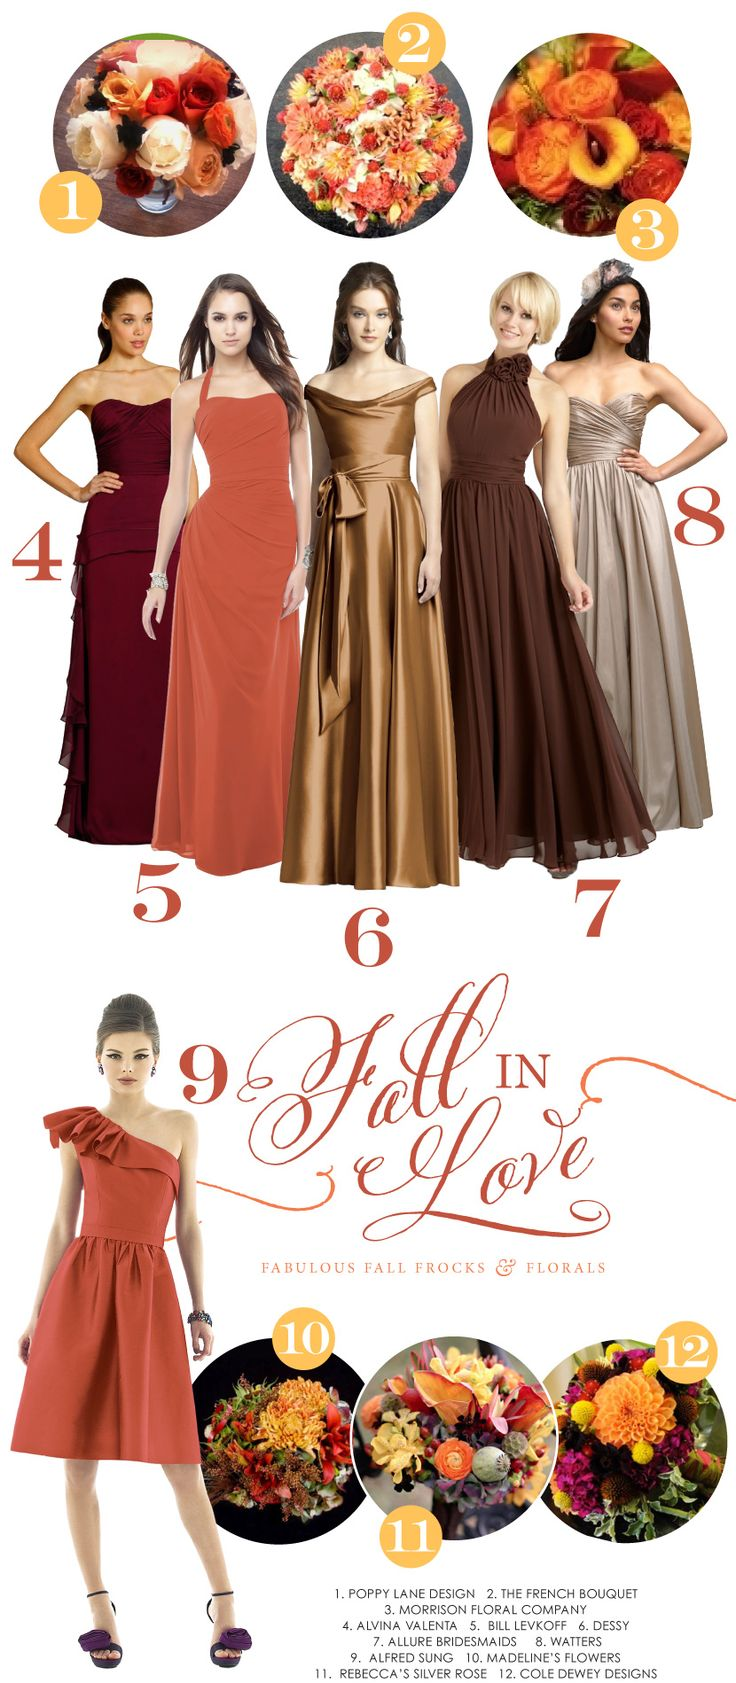 Best 25 brown bridesmaid dresses ideas on pinterest rustic fall in love fall flavored bridesmaid dresses and wedding bouquets wedding fall ombrellifo Images